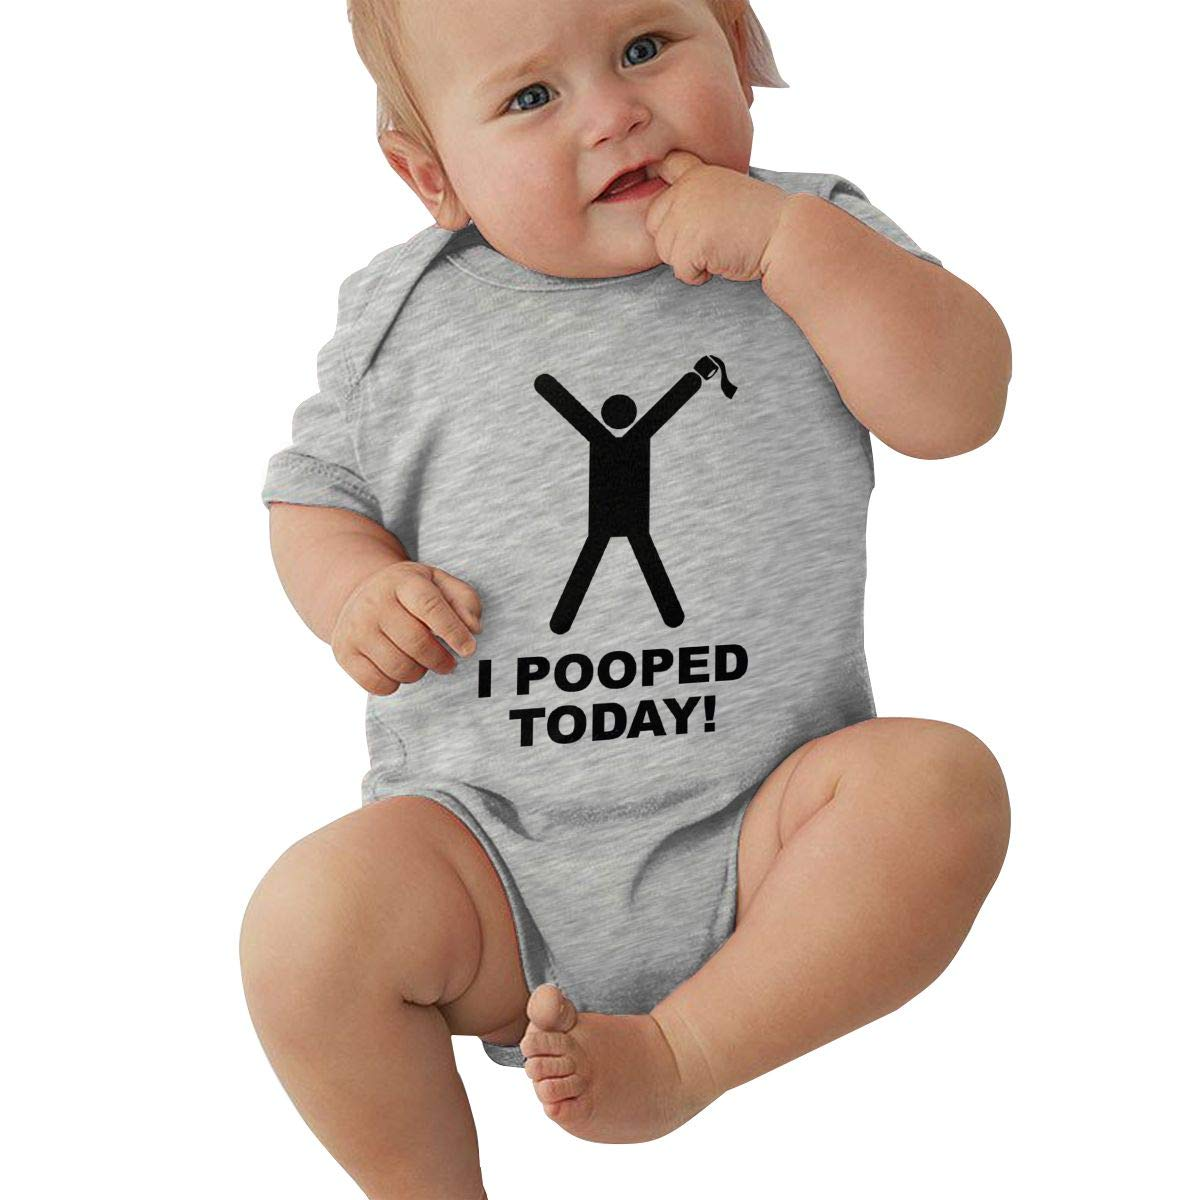 Infant Baby Boys Bodysuit Short-Sleeve Onesie I Pooped Today Print Outfit